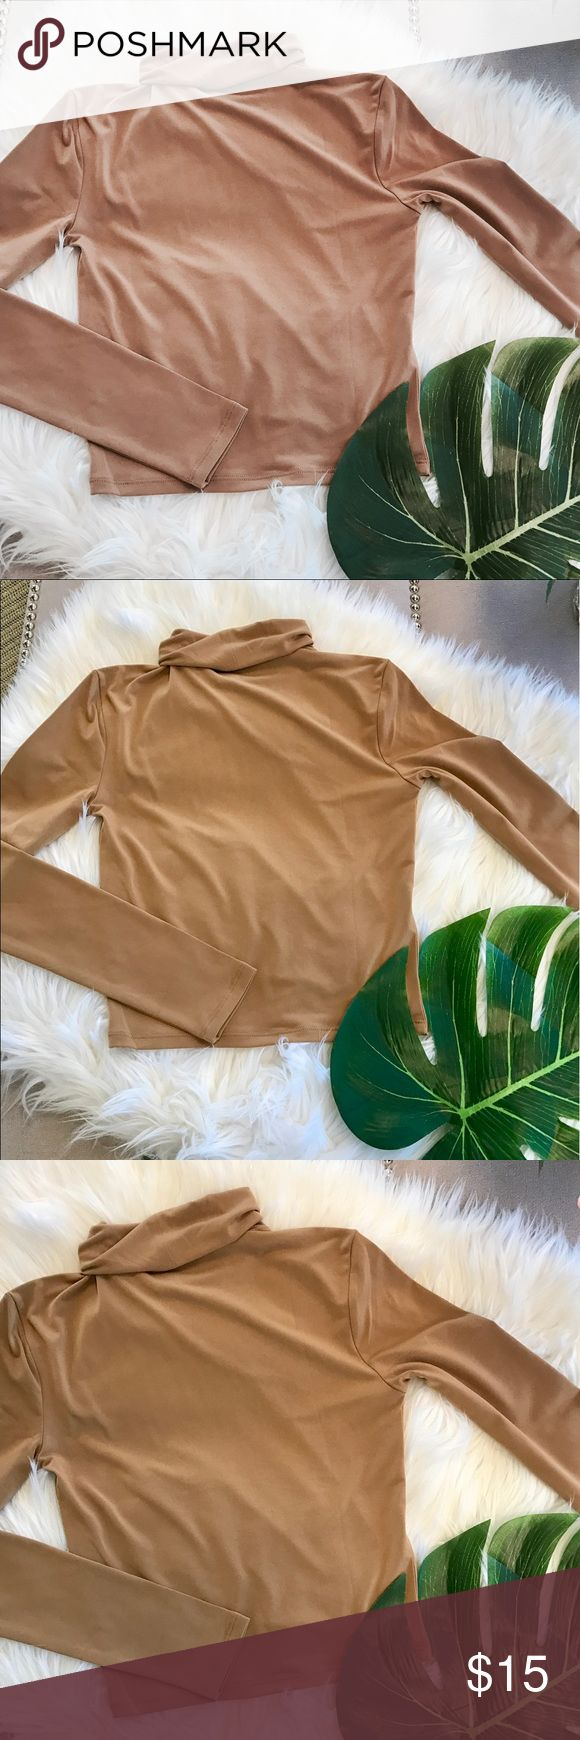 Forever 21 Camel Crop Turtleneck Top Camel colored crop top. Turtleneck & long sleeved. Super soft! Perfect for Fall & Winter. Paired perfectly with a leather skirt or high waisted black pants and booties! Also great for layering with overalls, slip dresses, etc. Has never been worn! Forever 21 Tops Crop Tops